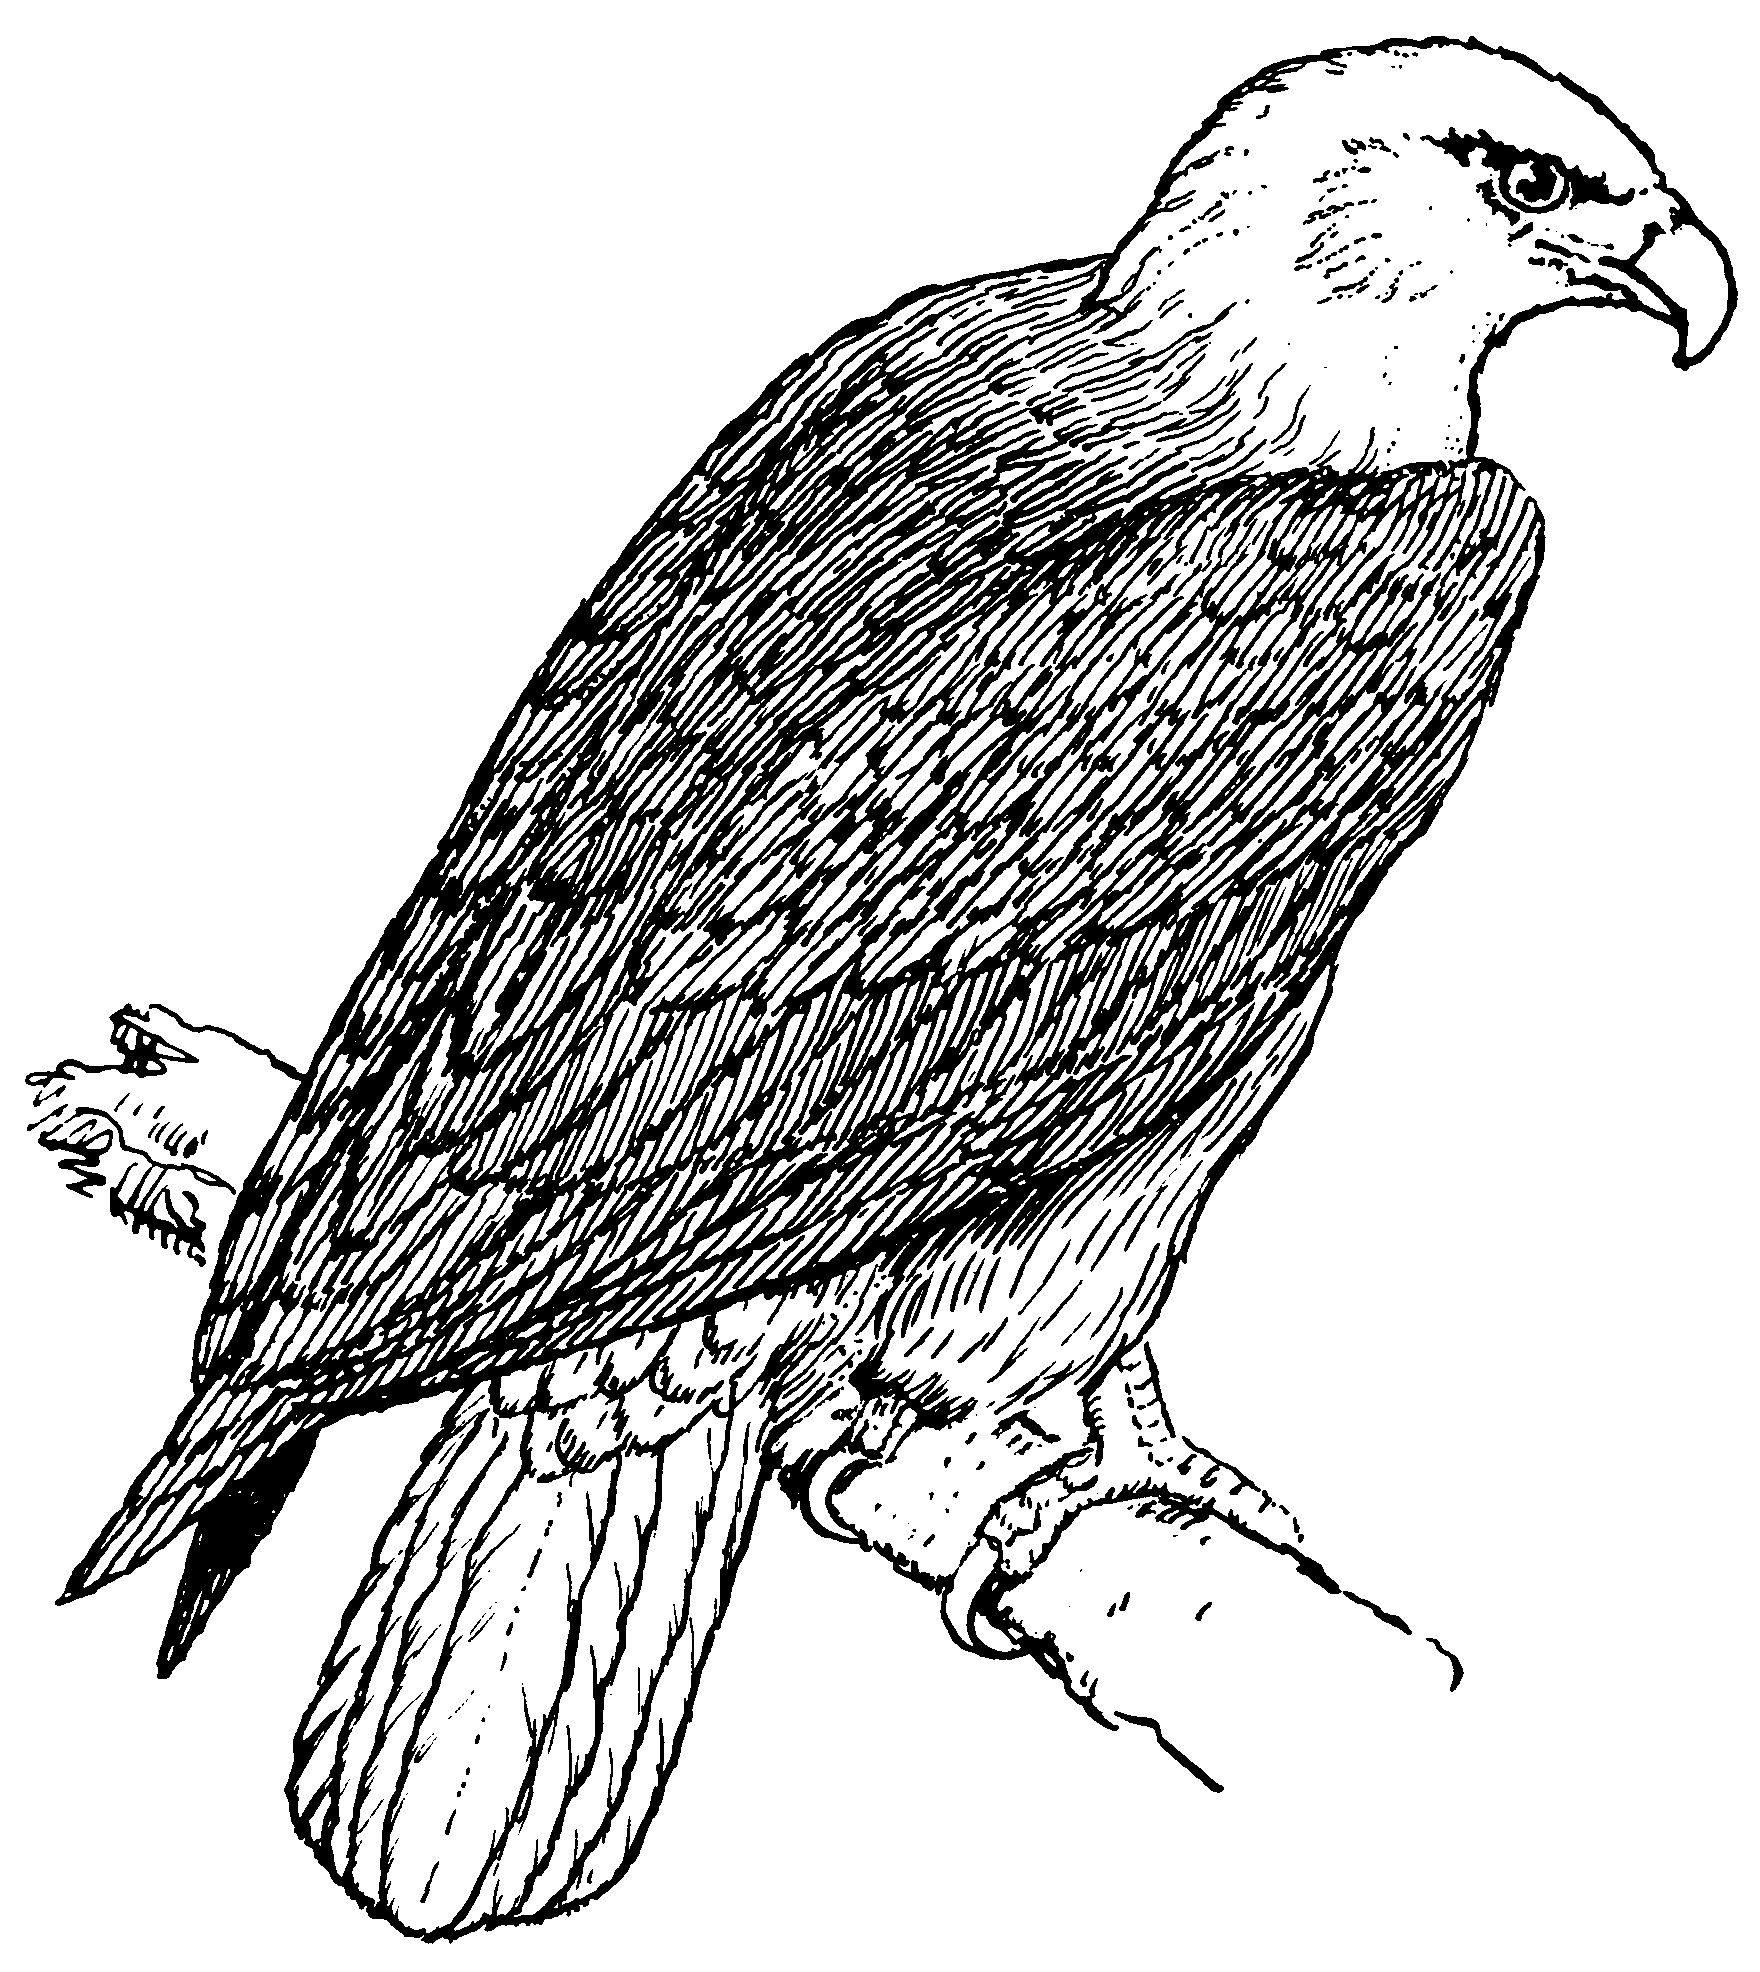 don't forget to share bald aigle dessins à colorier on facebook, twitter